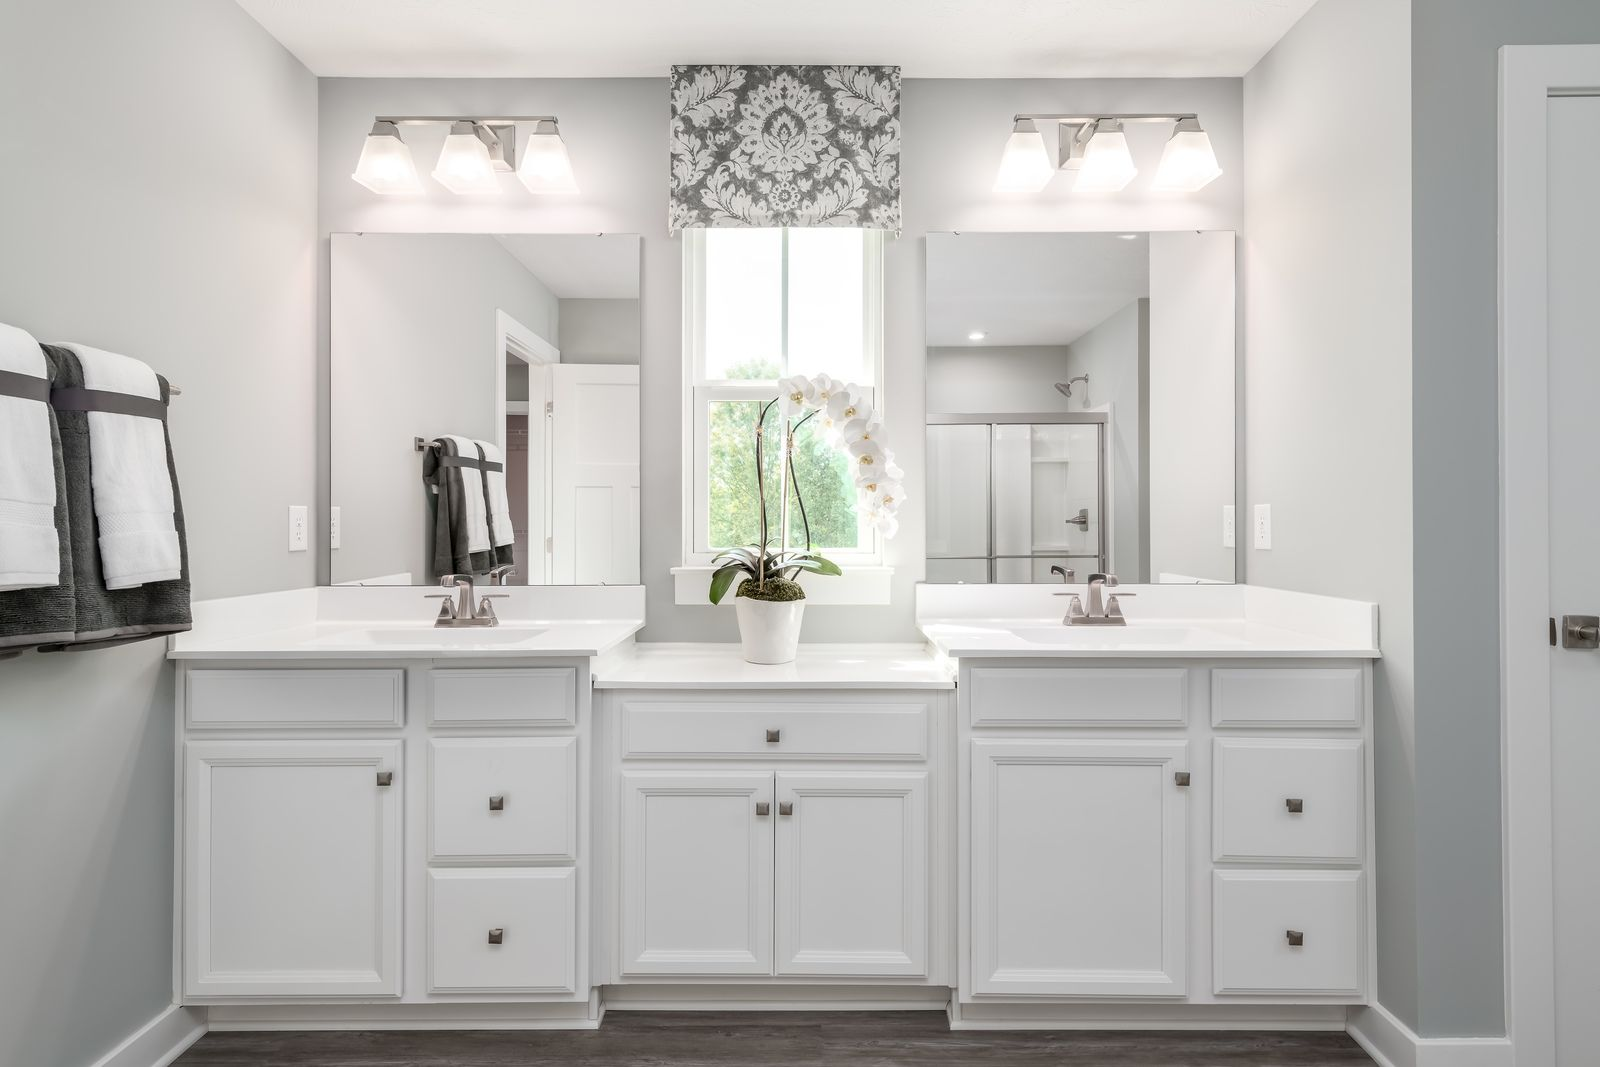 Bathroom featured in the Hudson By Ryan Homes in Indianapolis, IN